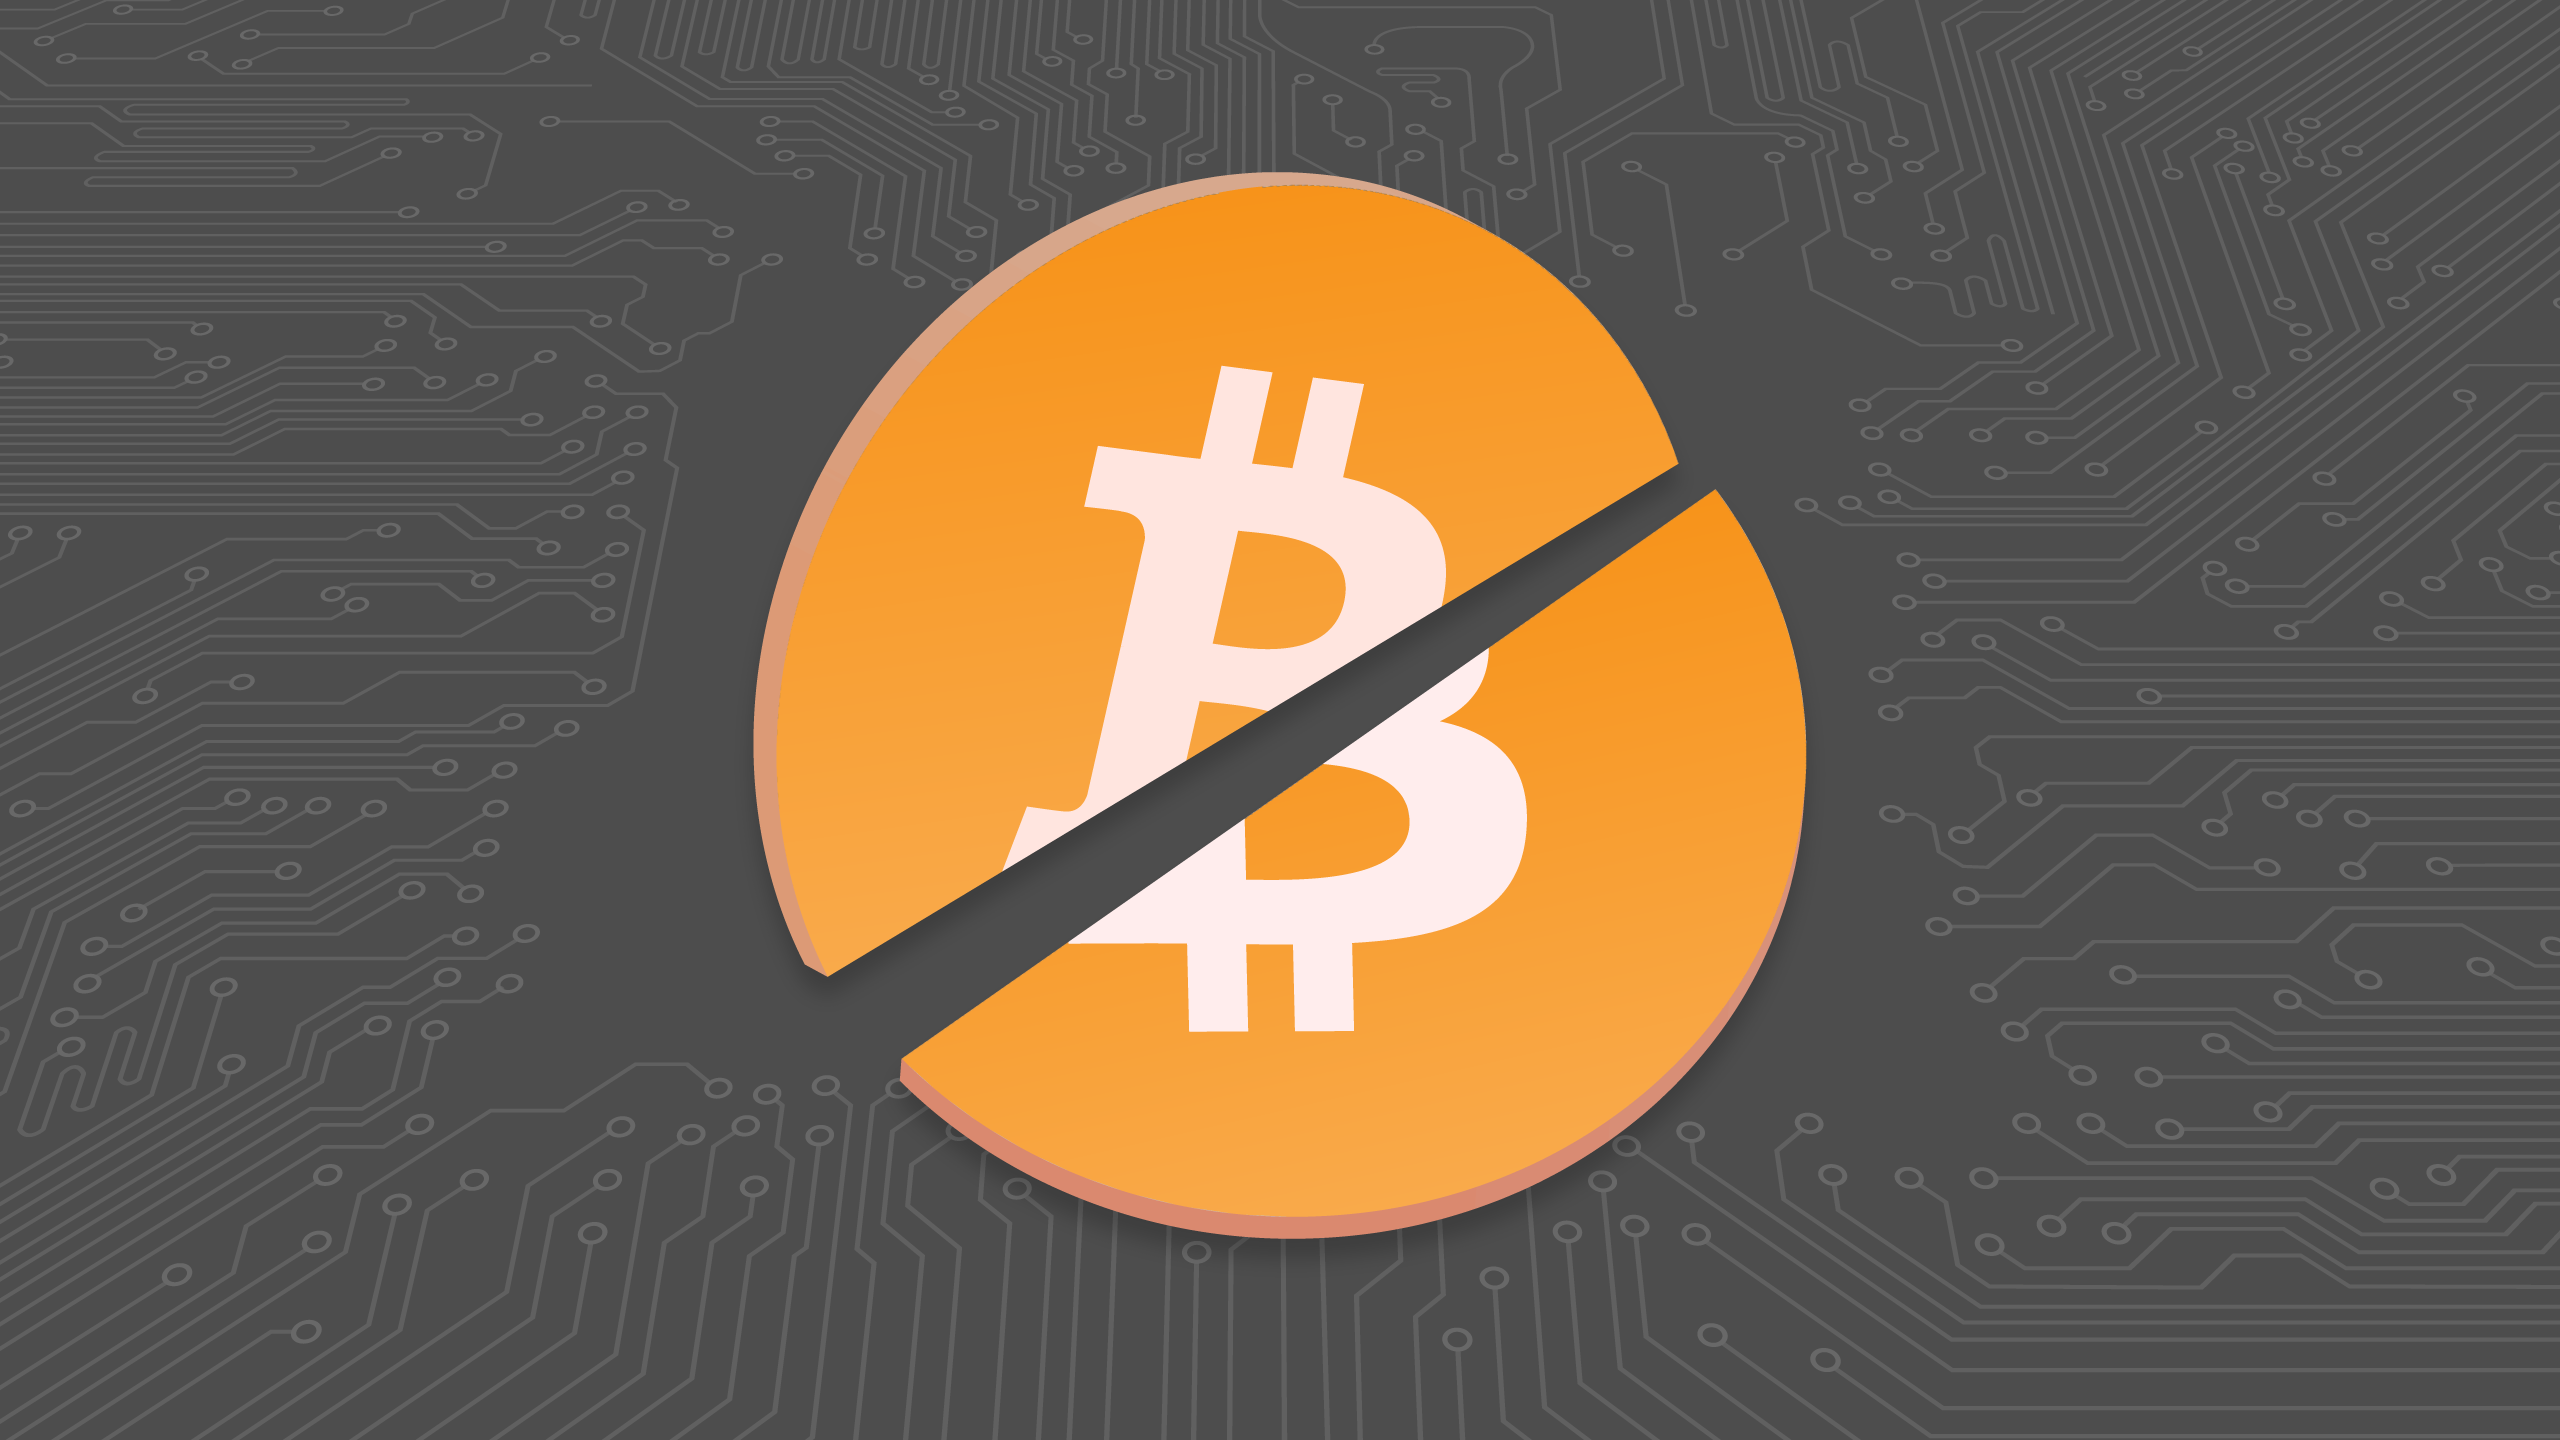 Korean crypto exchange Bithumb says it lost over $30M following a hack		 		 	Jon Russell         @	       	11 hours